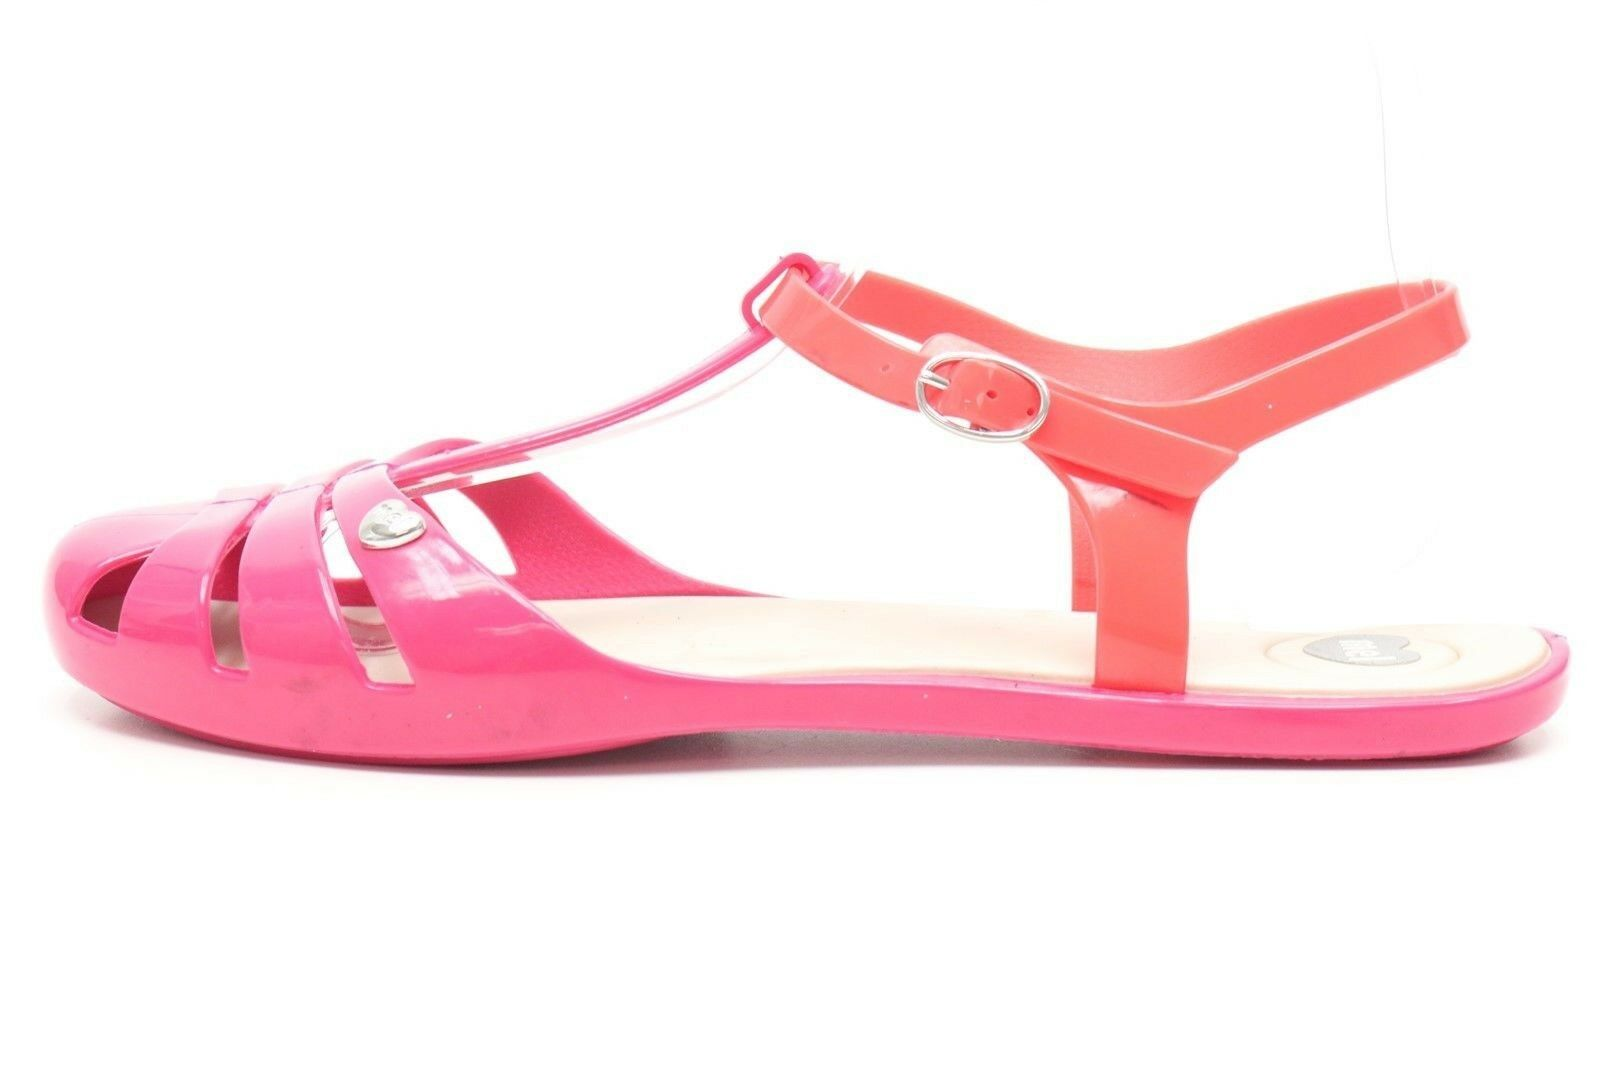 Womens MELISSA pink fuchsia rubber ankle strap sandals flats shoes sz. 8 ,